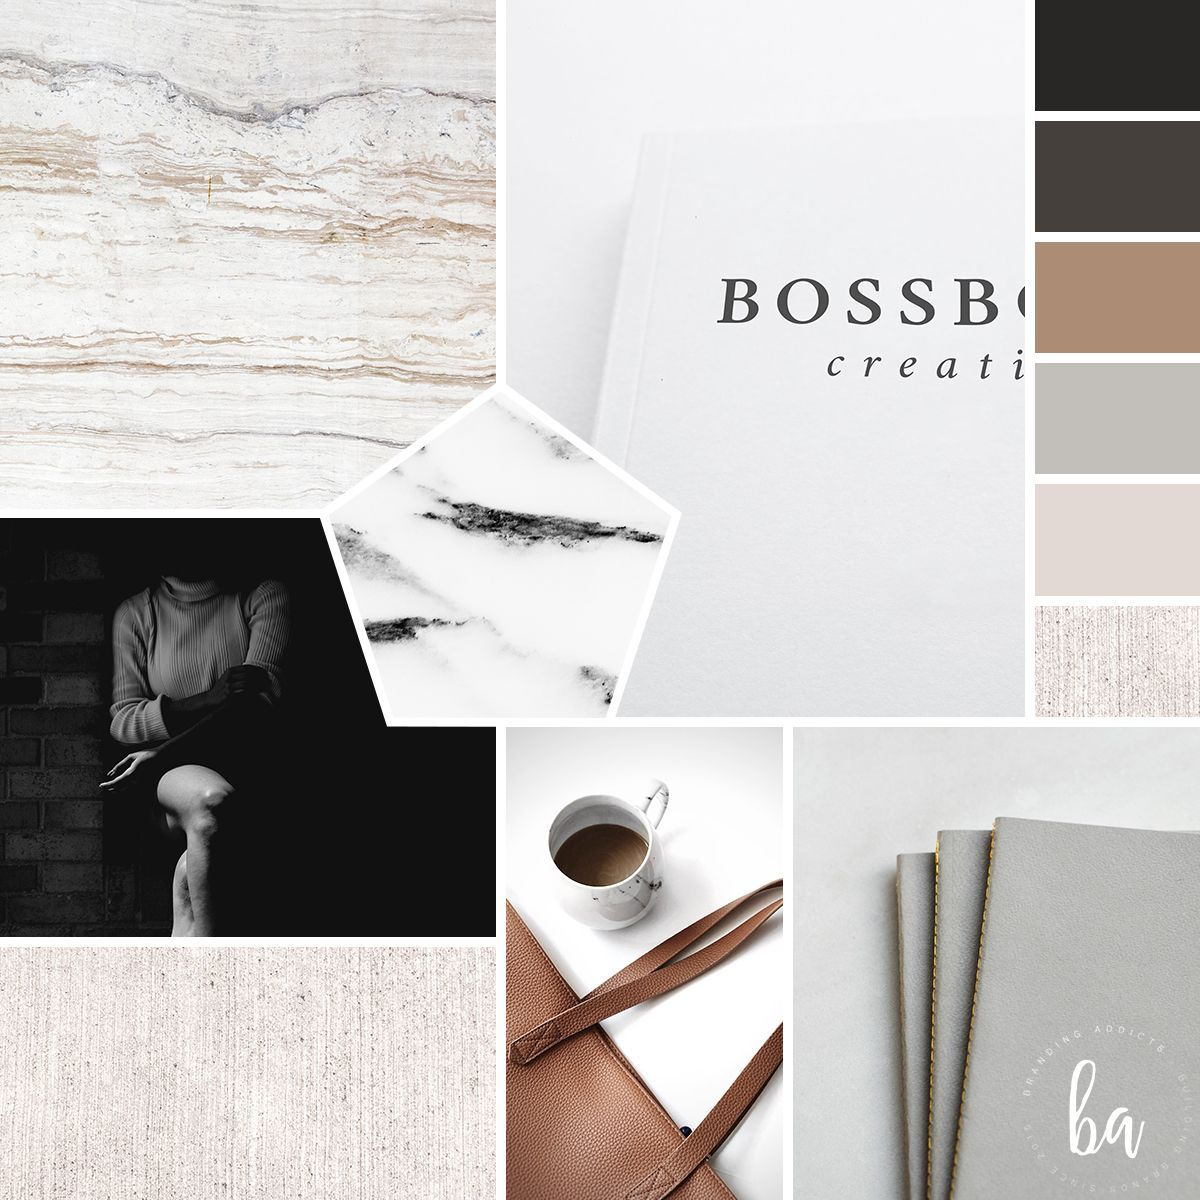 Modern, Cozy, Chic, Fashion, Minimal, Classic mood board created for Boss Book C...